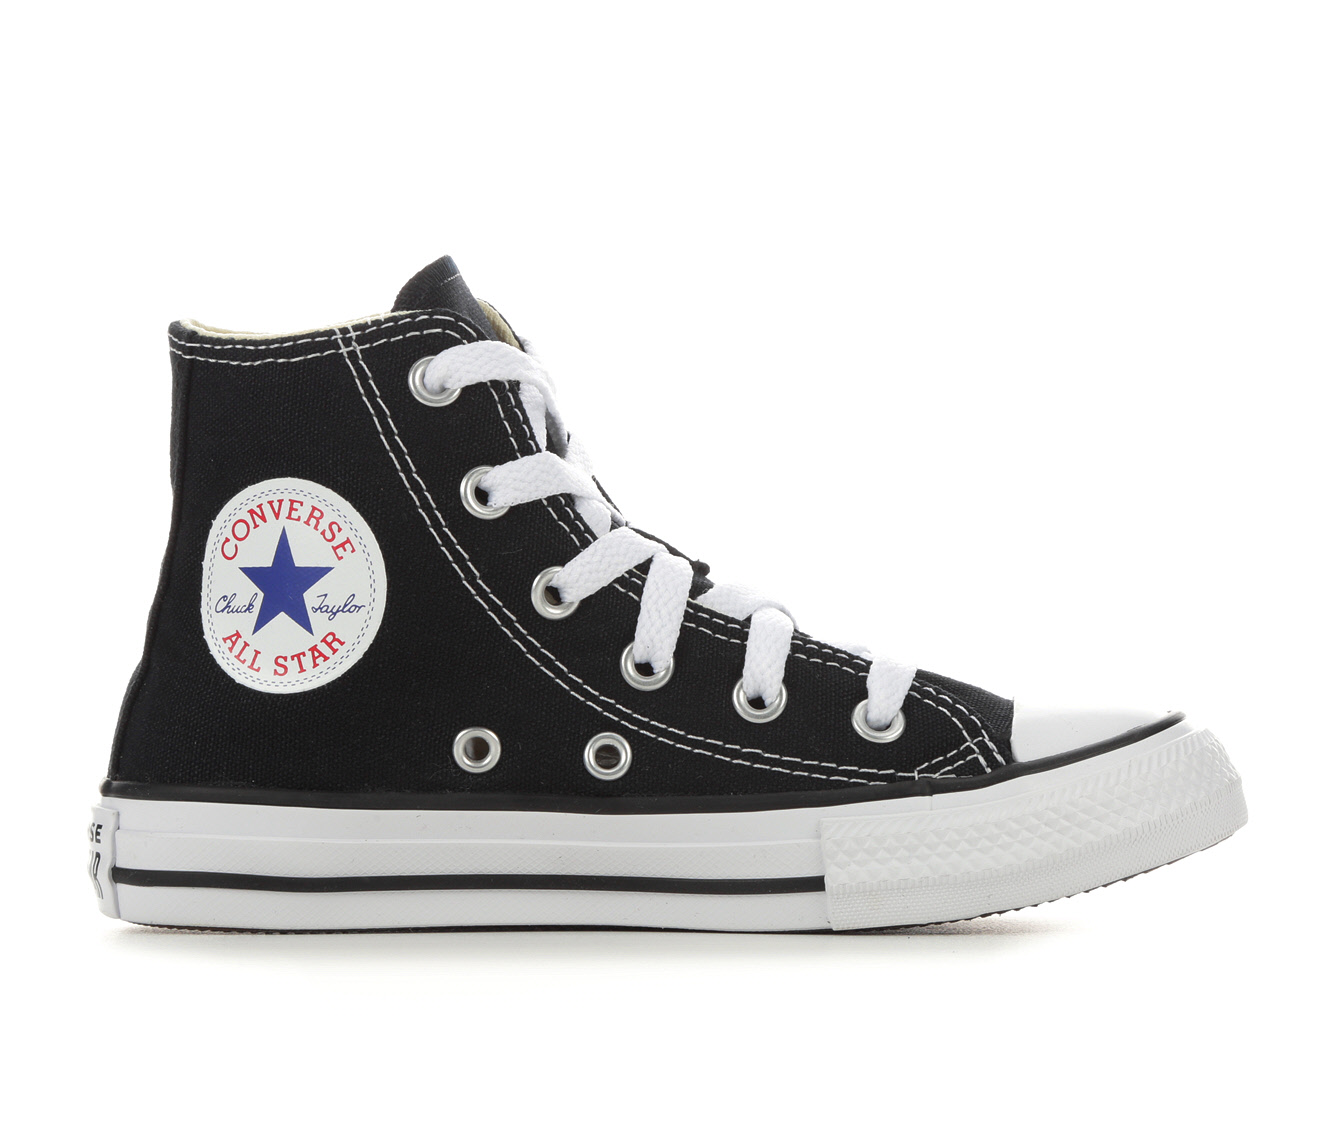 Girls' Converse Chuck Taylor All Star Hi Sneakers (Black)